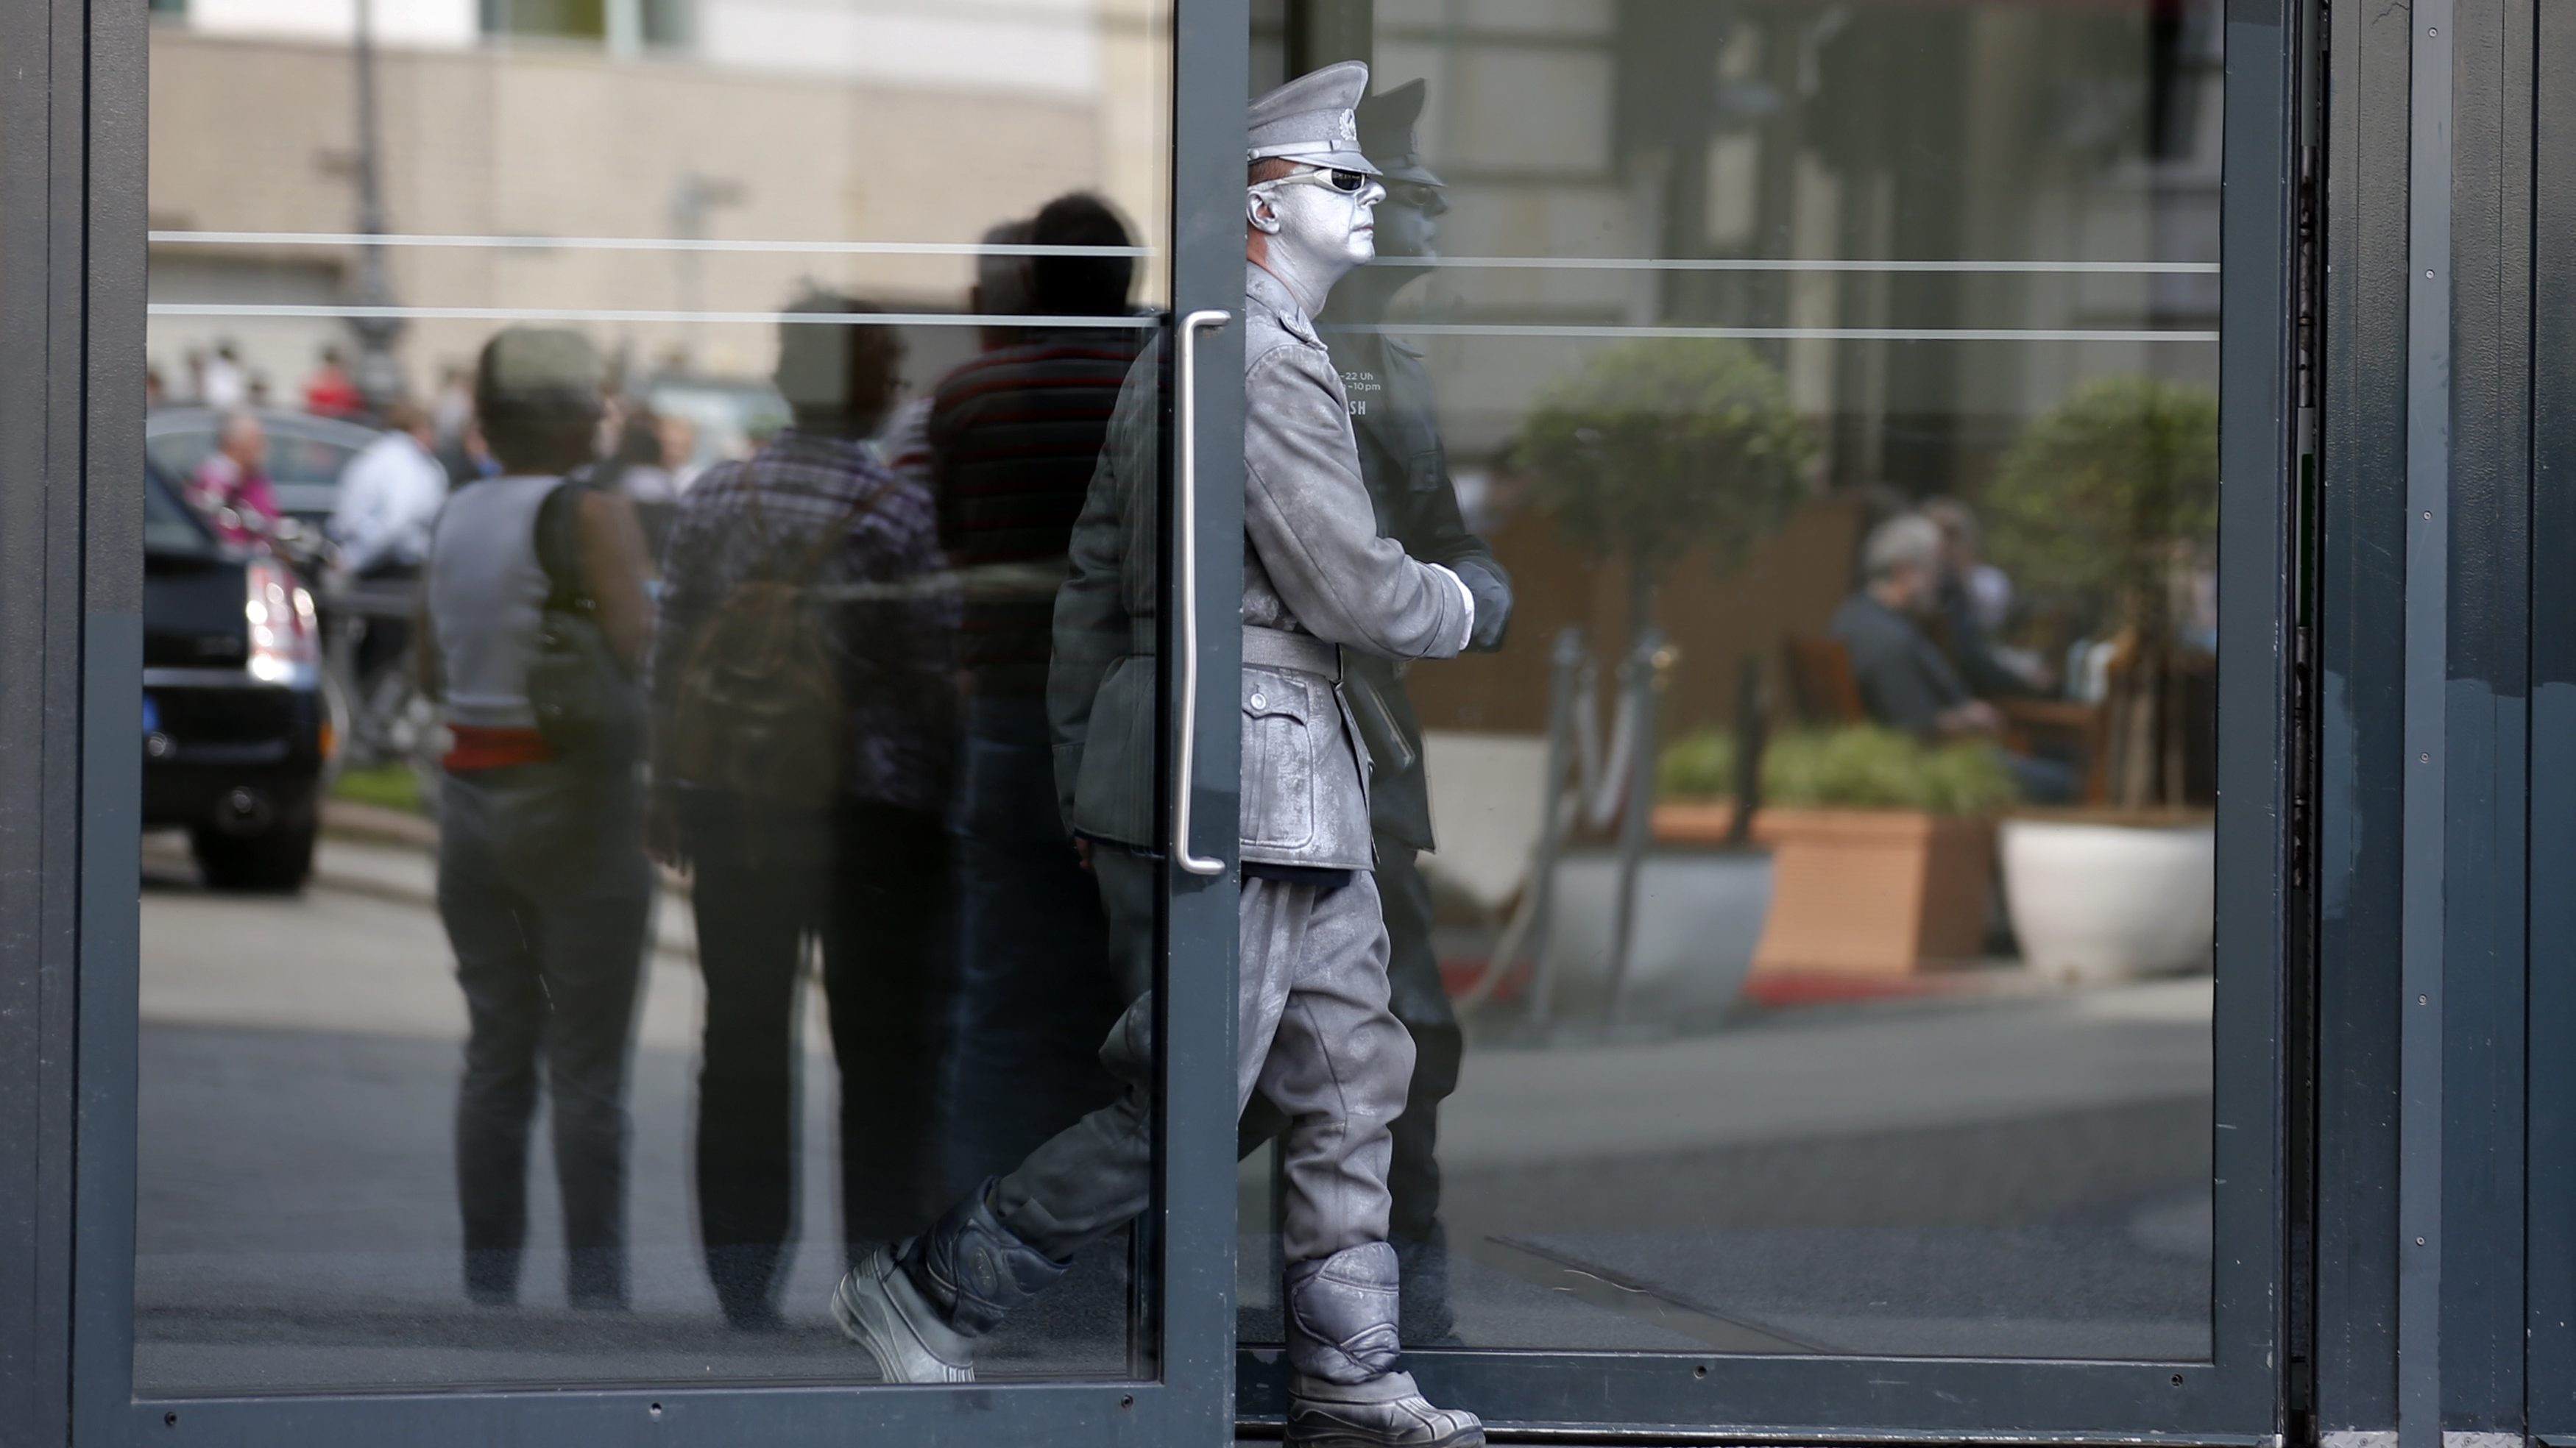 A street artist wearing a coloured uniform of the former East German army leaves the Academy of Arts near the Brandenburg Gate in Berlin, April 26, 2013.